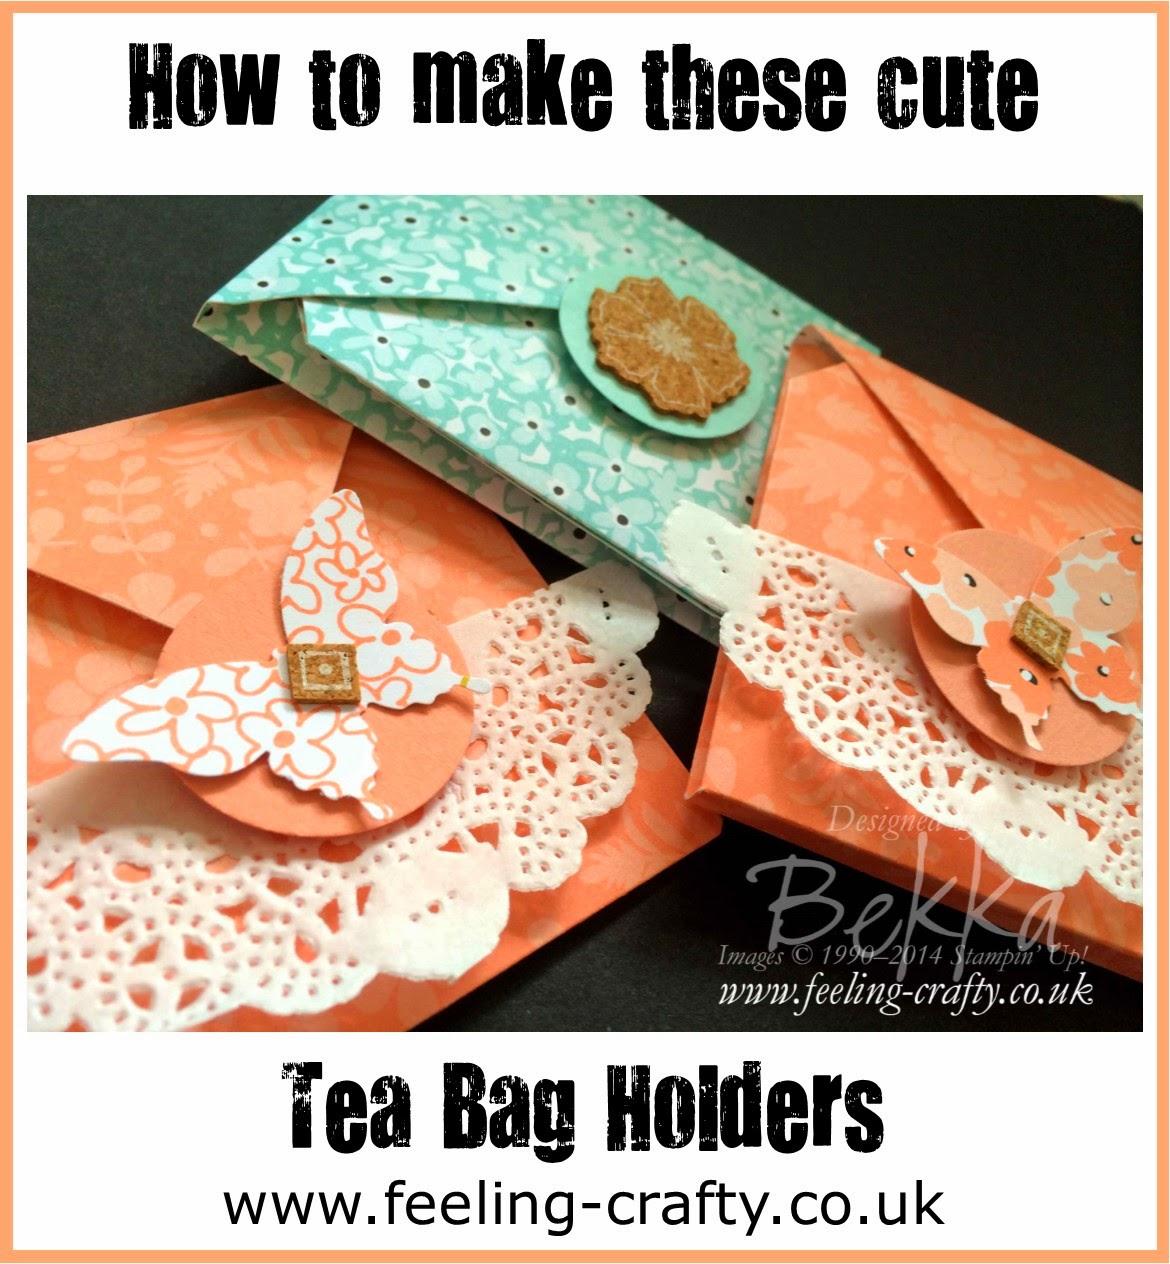 Tutorial - How to make a Decorative Tea Bag Holder